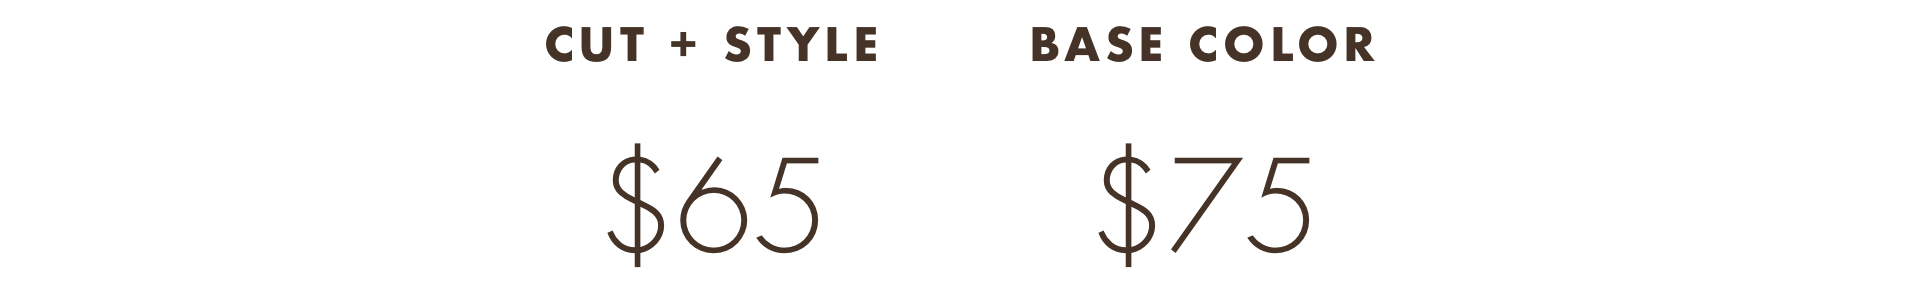 Stylist Pricing Web Insert 2.png